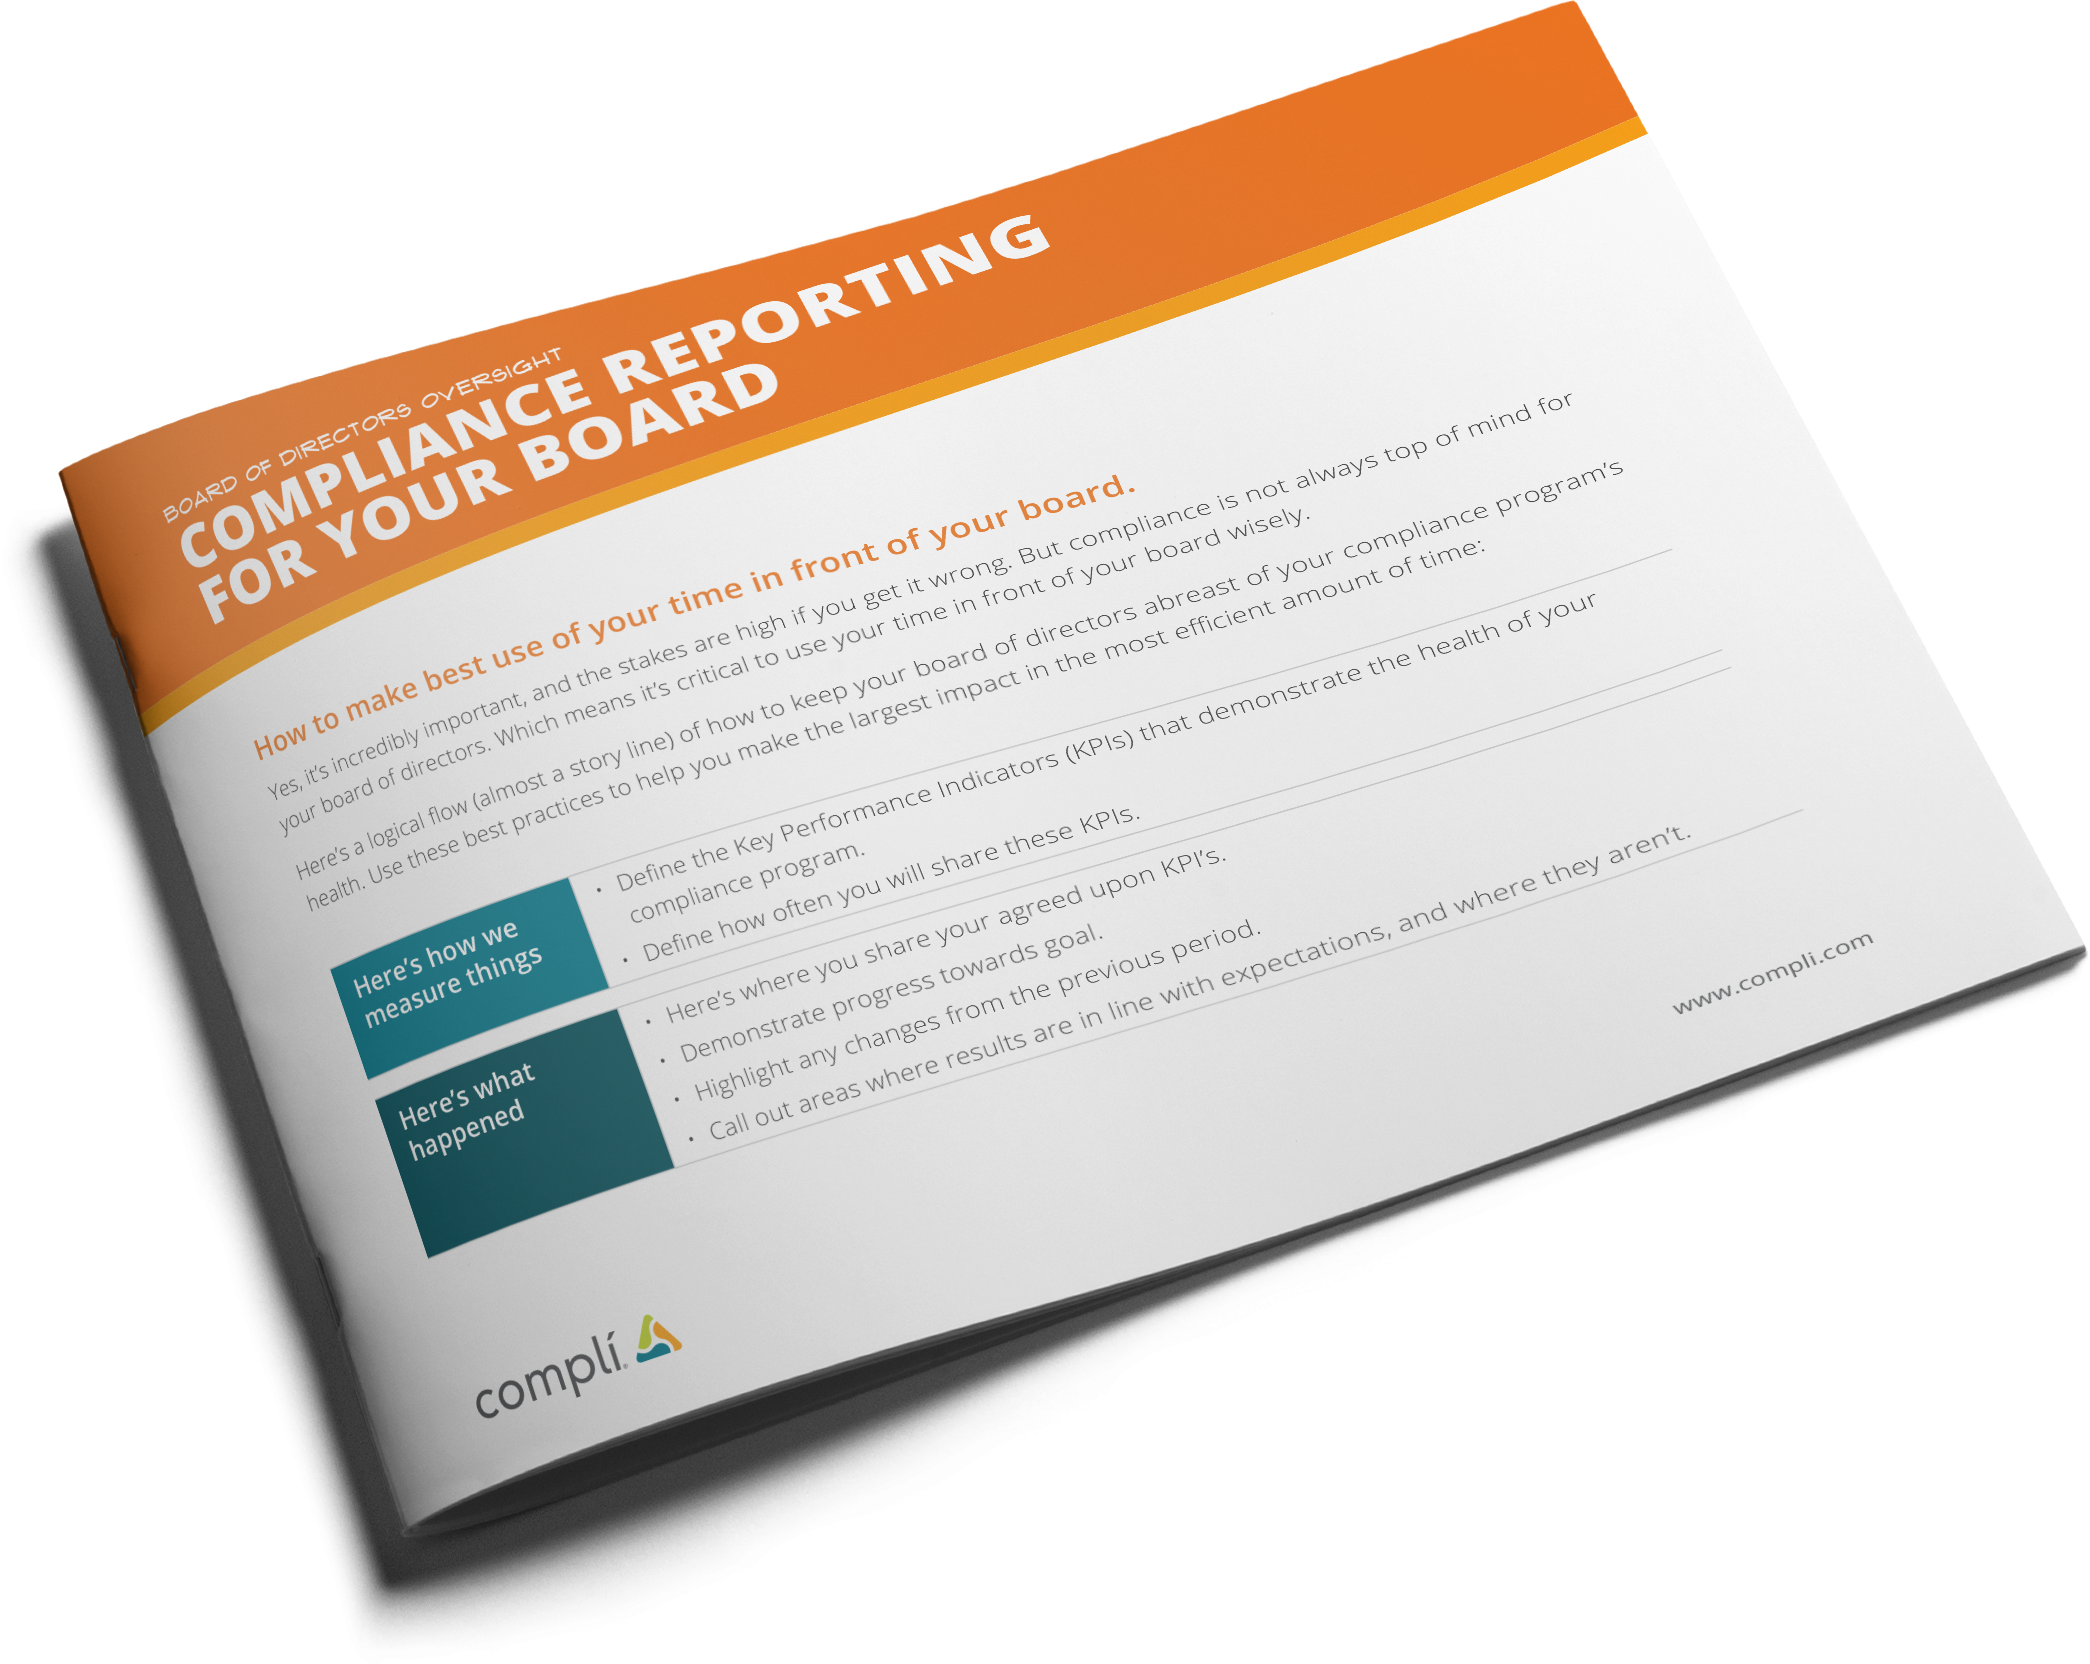 Compliance Reporting for Your Board Worksheet Cover - transparent 0717.png